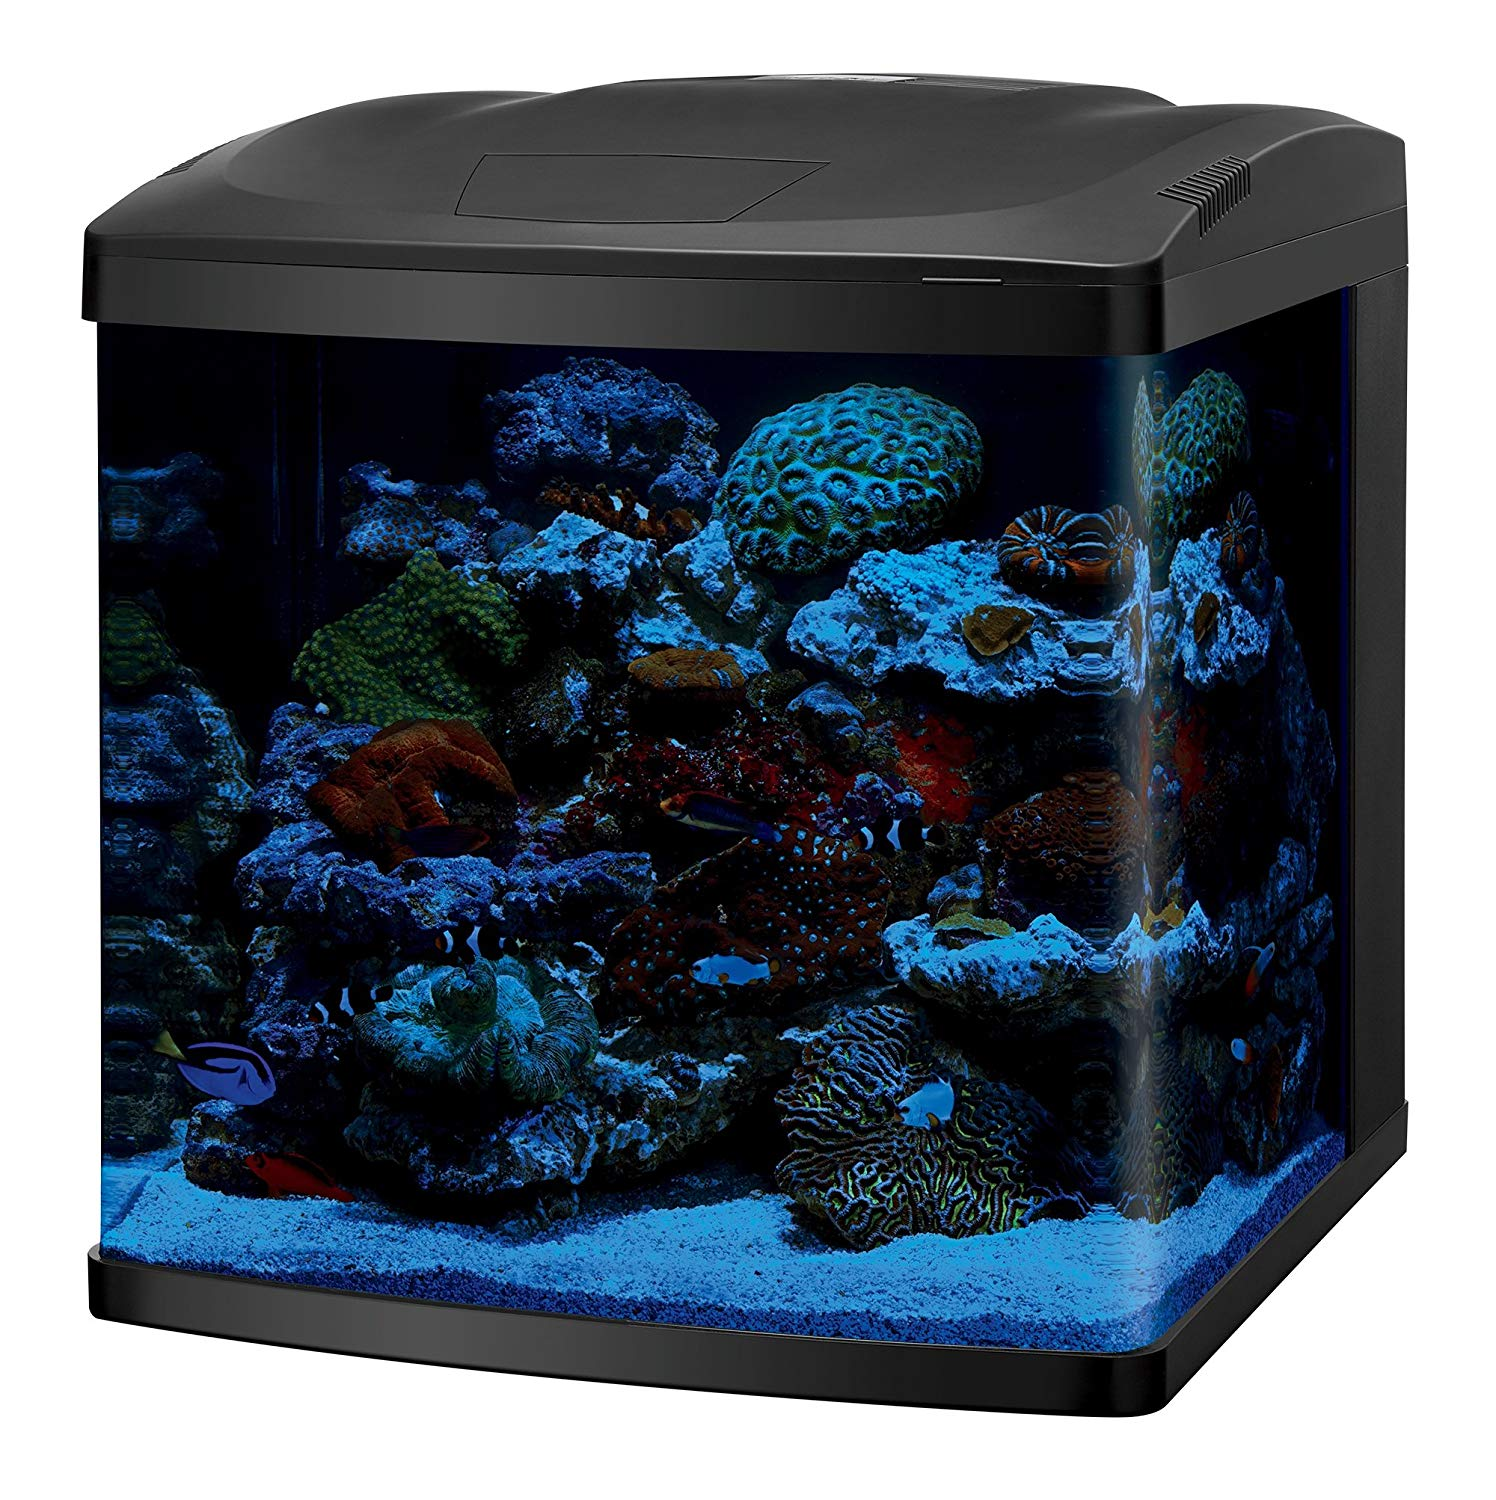 5 Great 25-30 Gallon Aquarium Kits